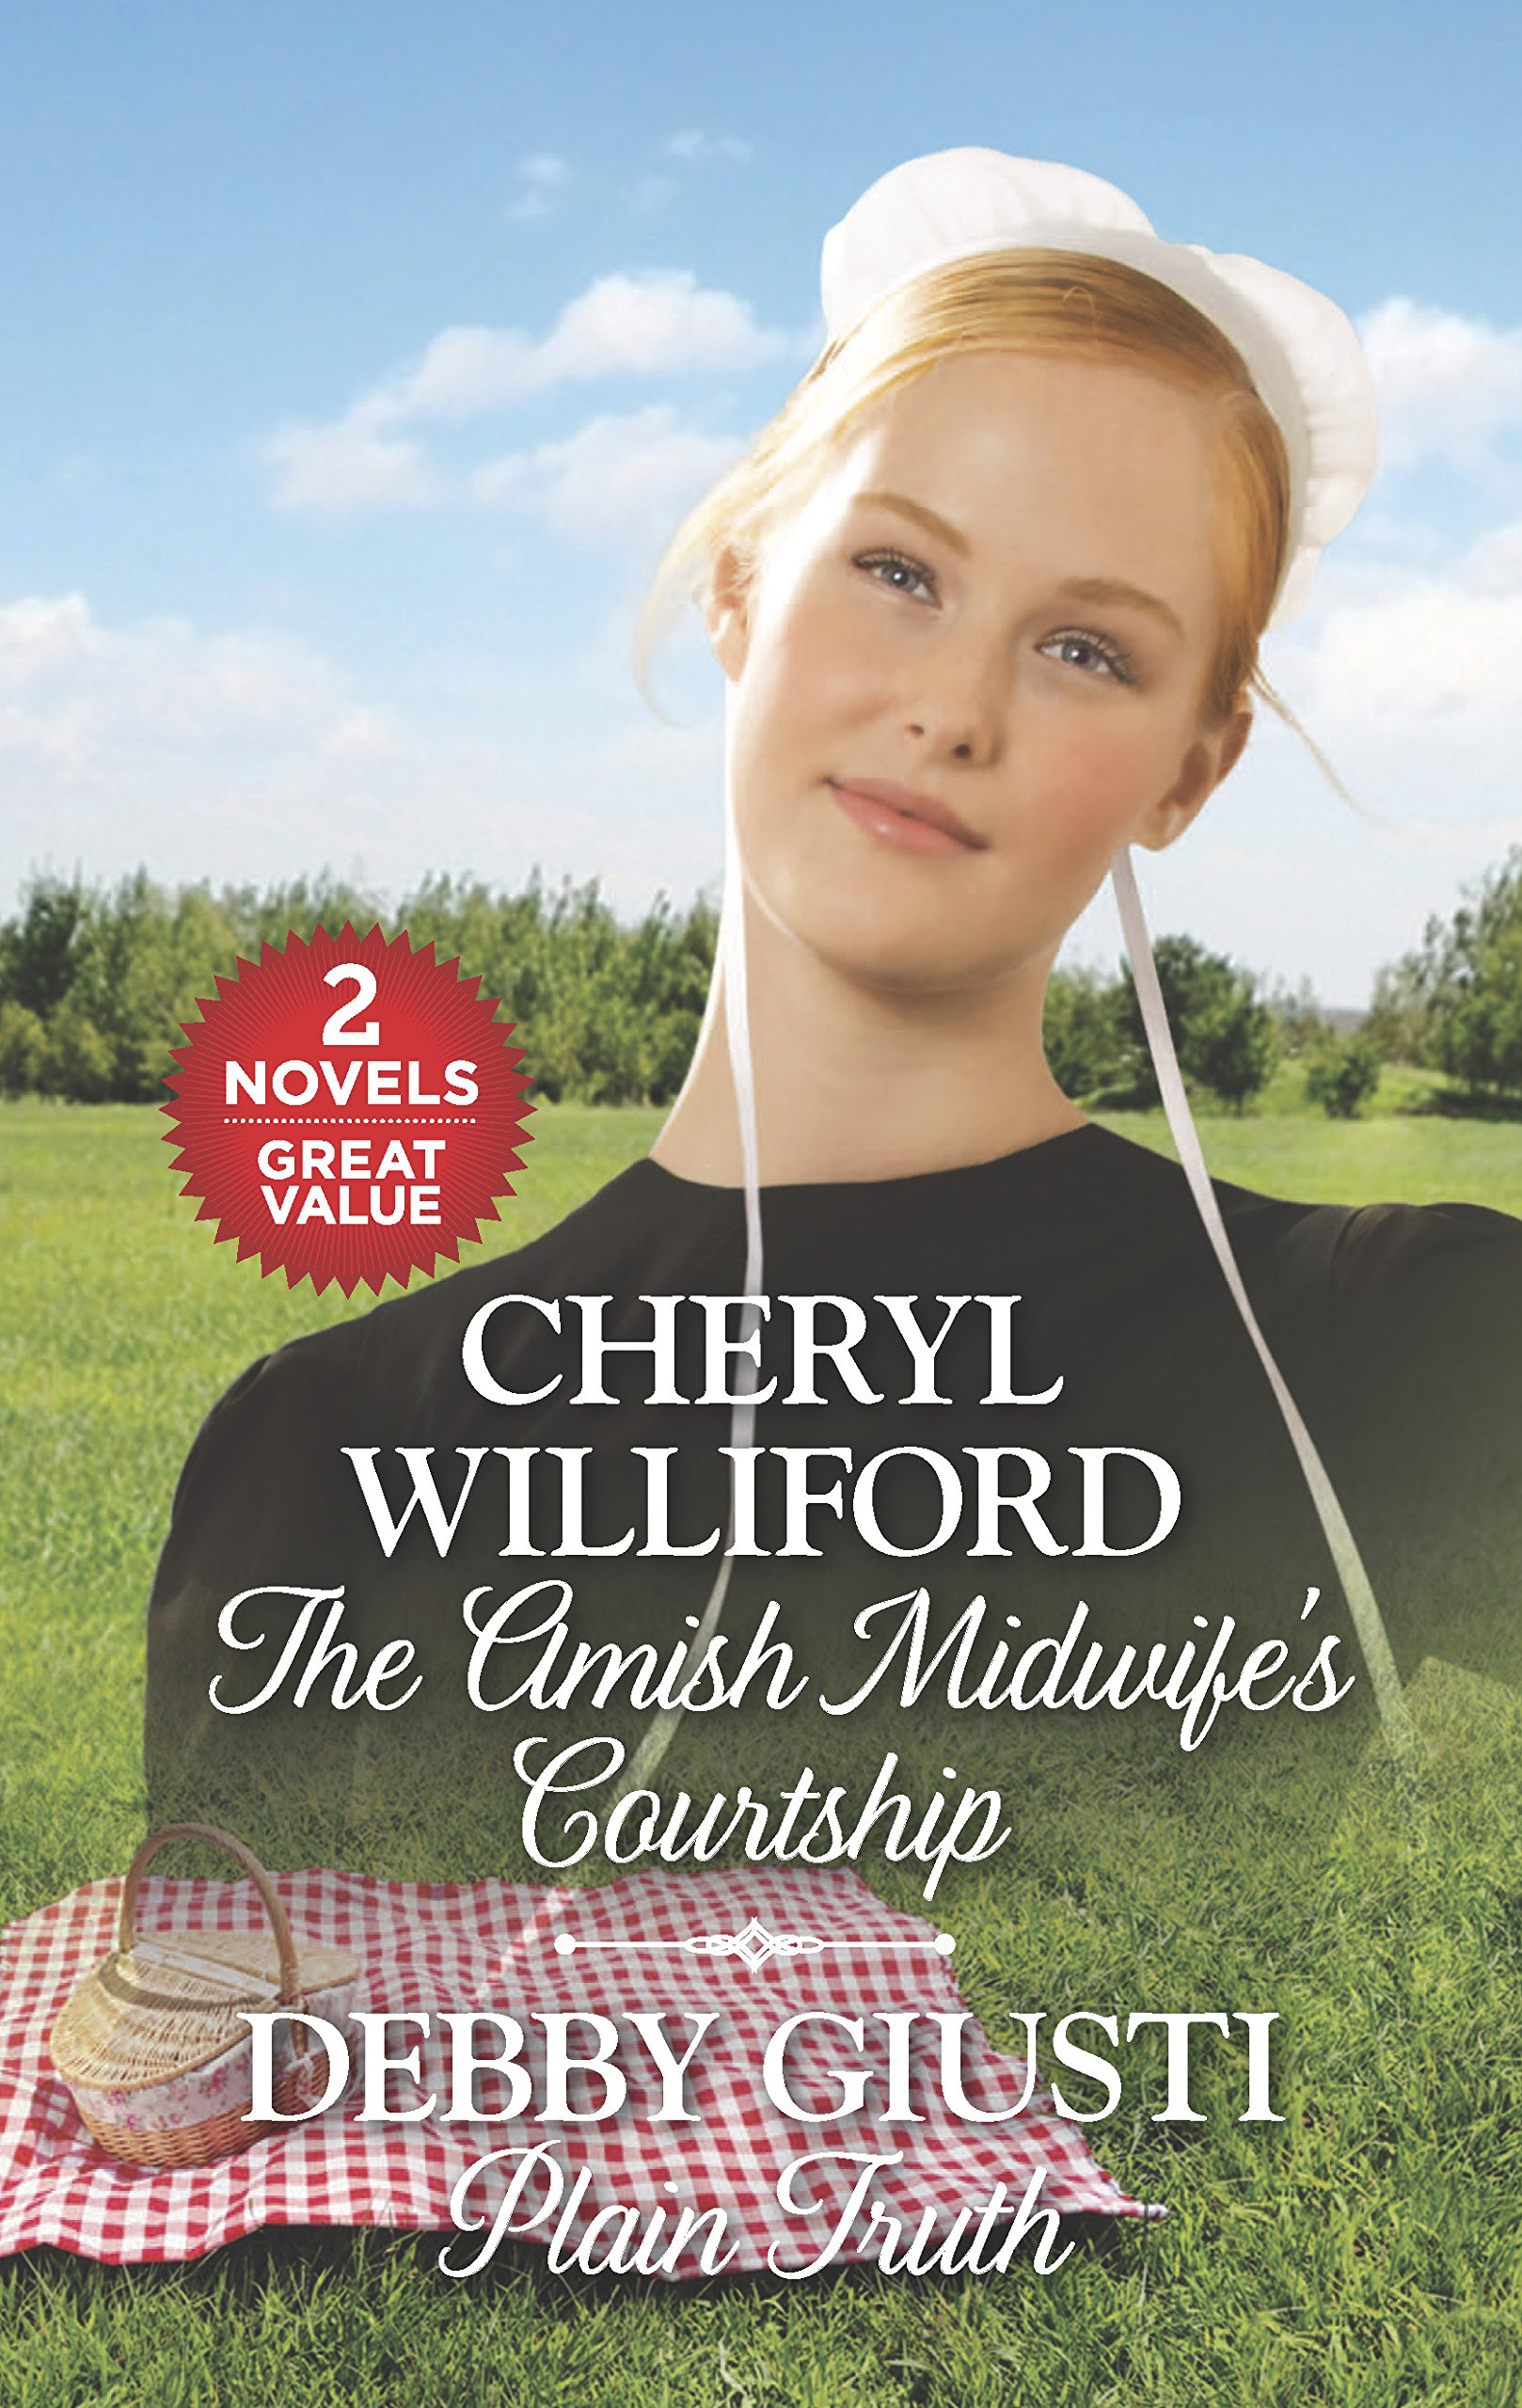 The Amish Midwife's Courtship and Plain Truth: An Anthology: Cheryl  Williford, Debby Giusti: 9780373209750: Books - Amazon.ca